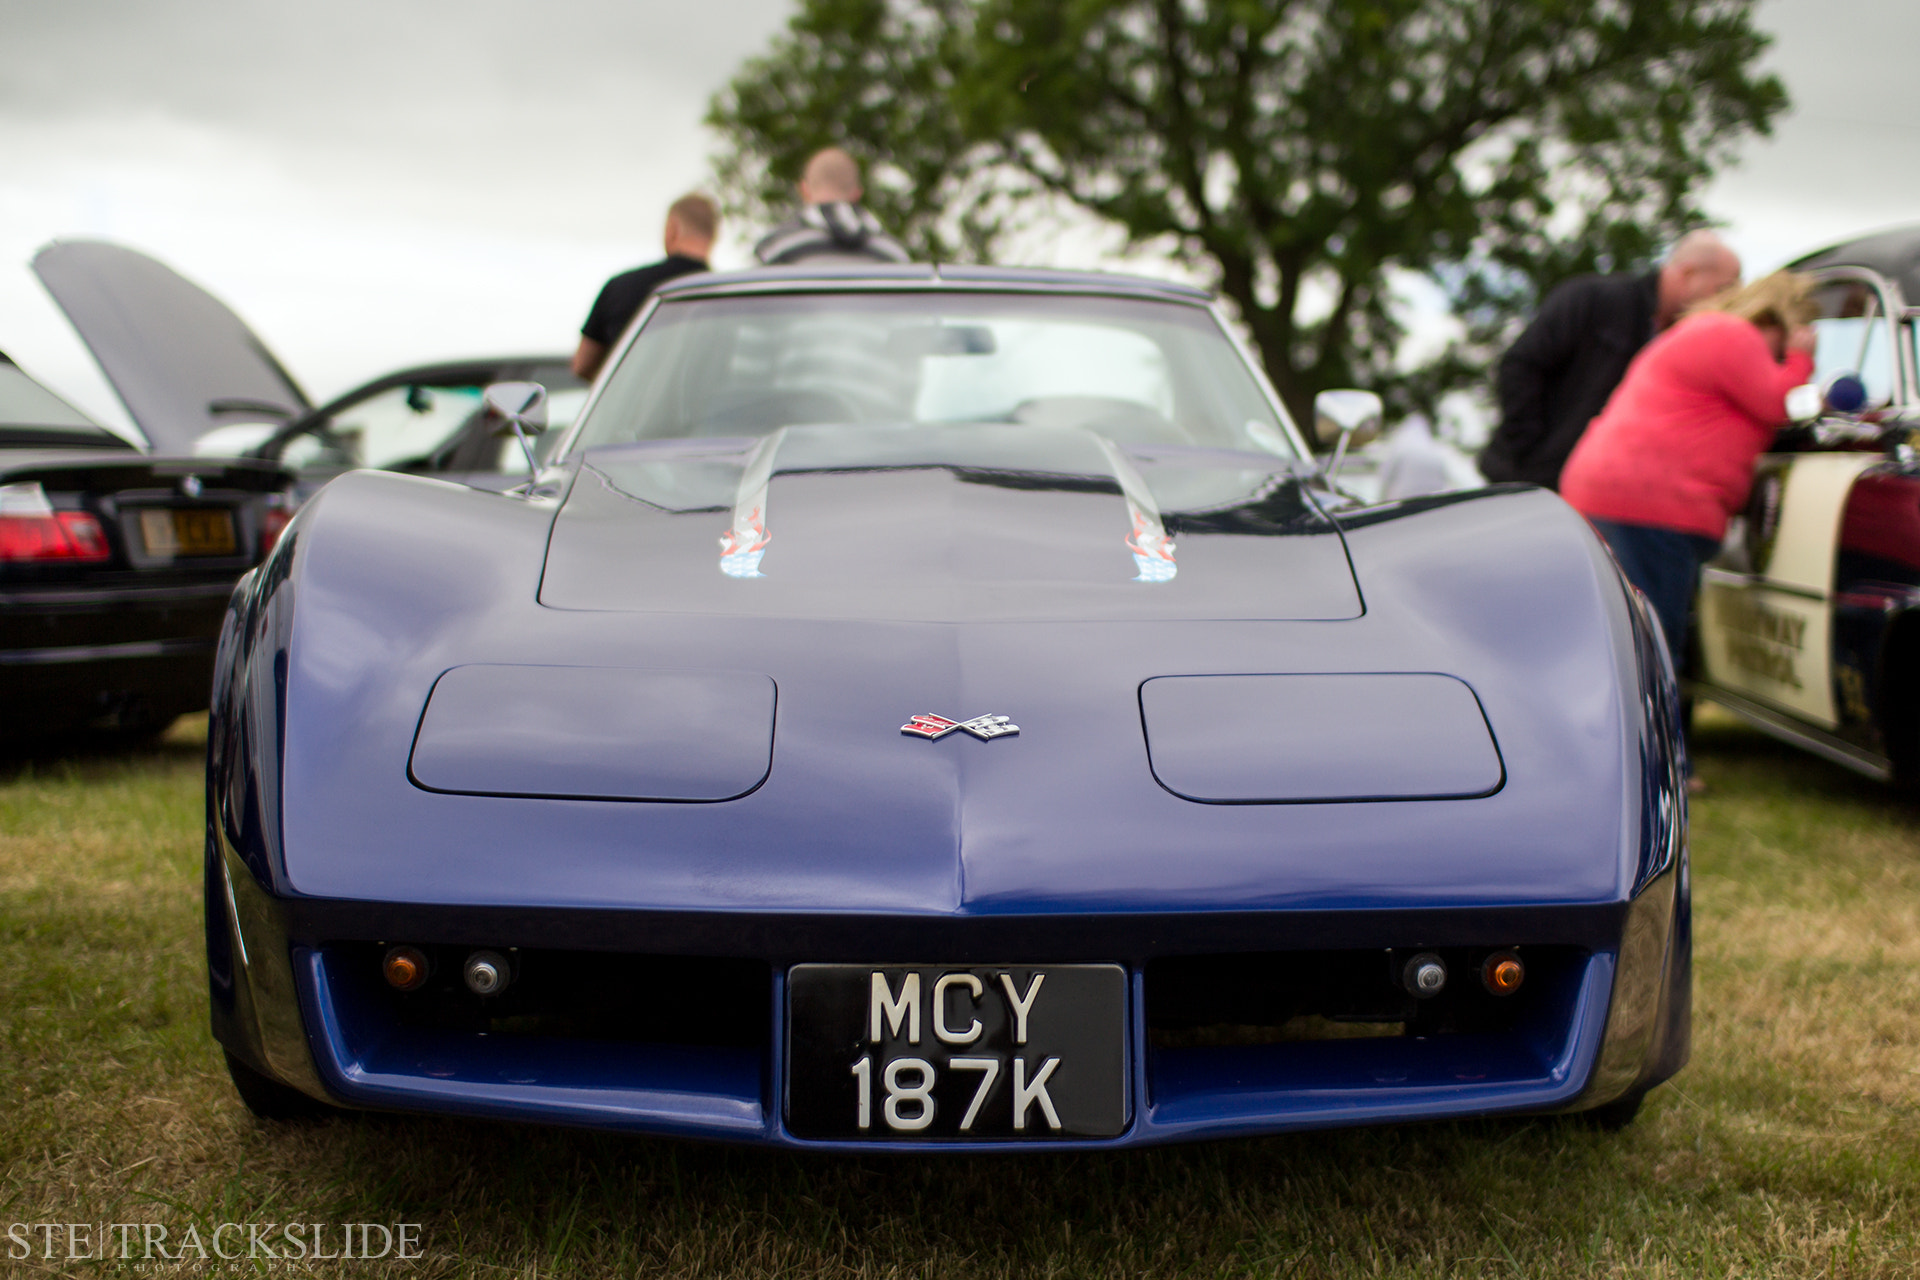 Photograph Another classic Corvette by Ste Trackslide on 500px